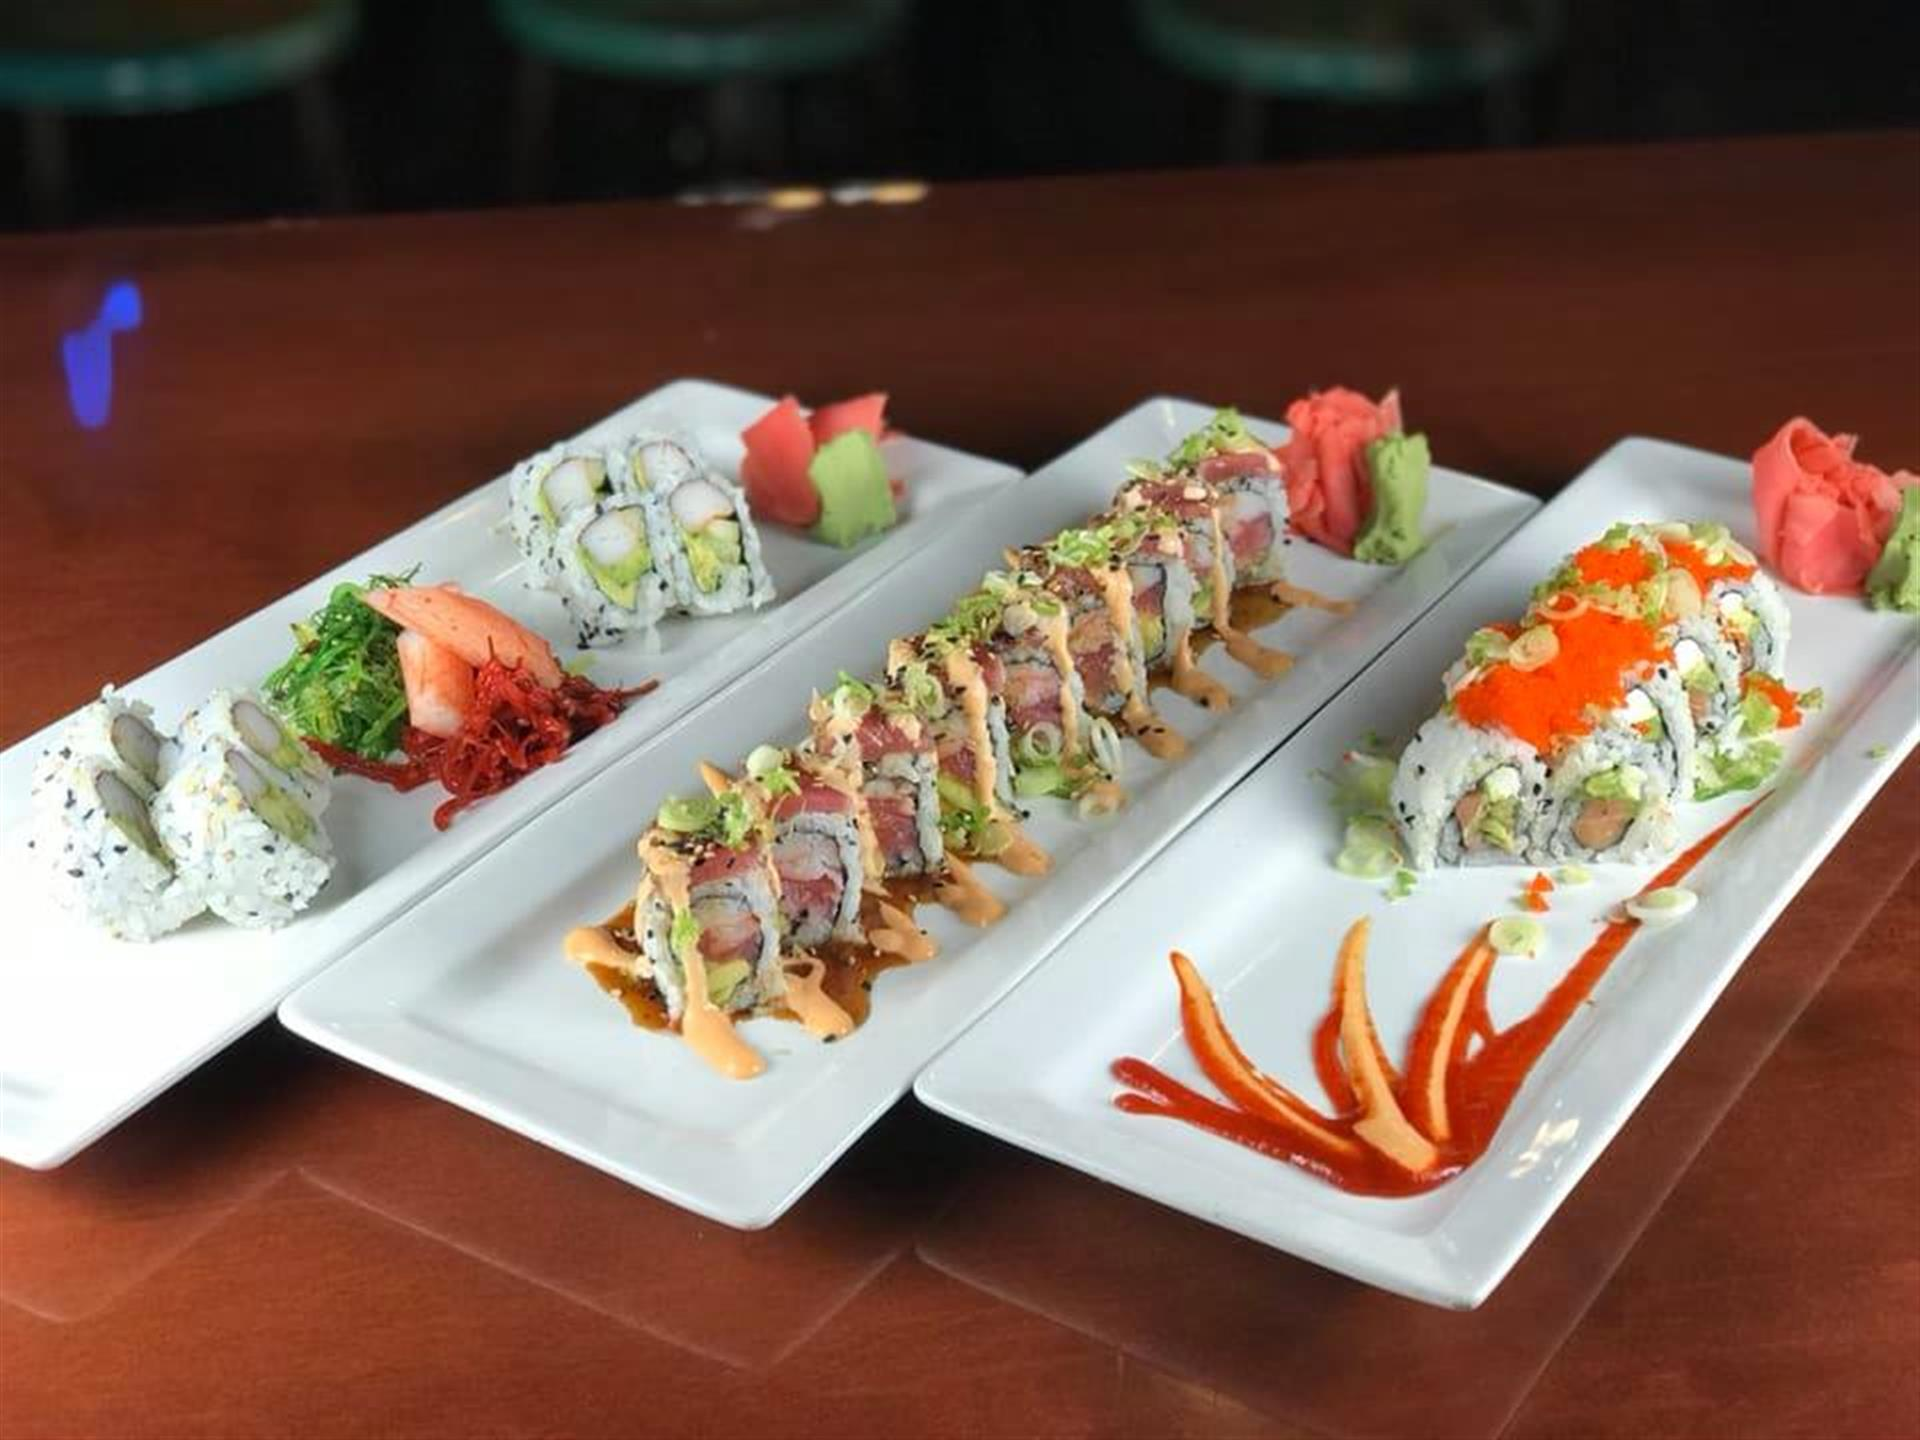 three sushi rolls on plates